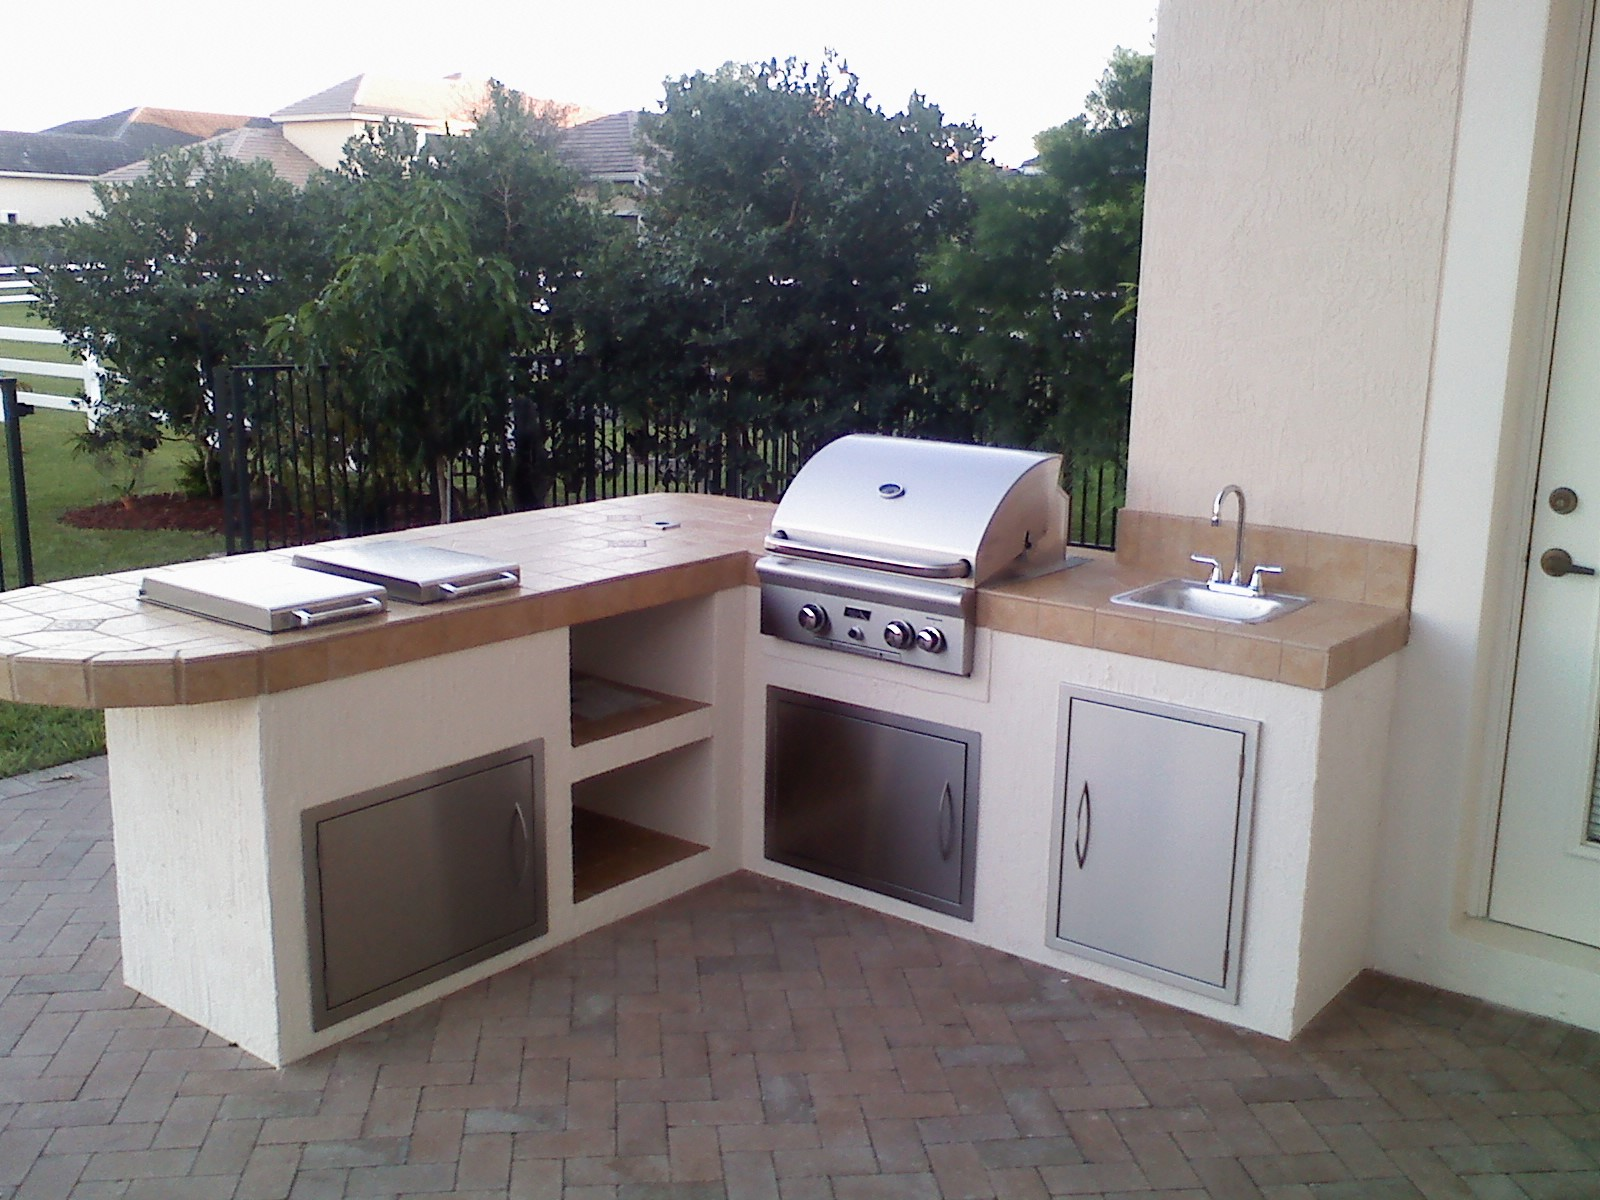 Aog24 Built In American Outdoor Grill Island Kitchen With Aog Side Burners